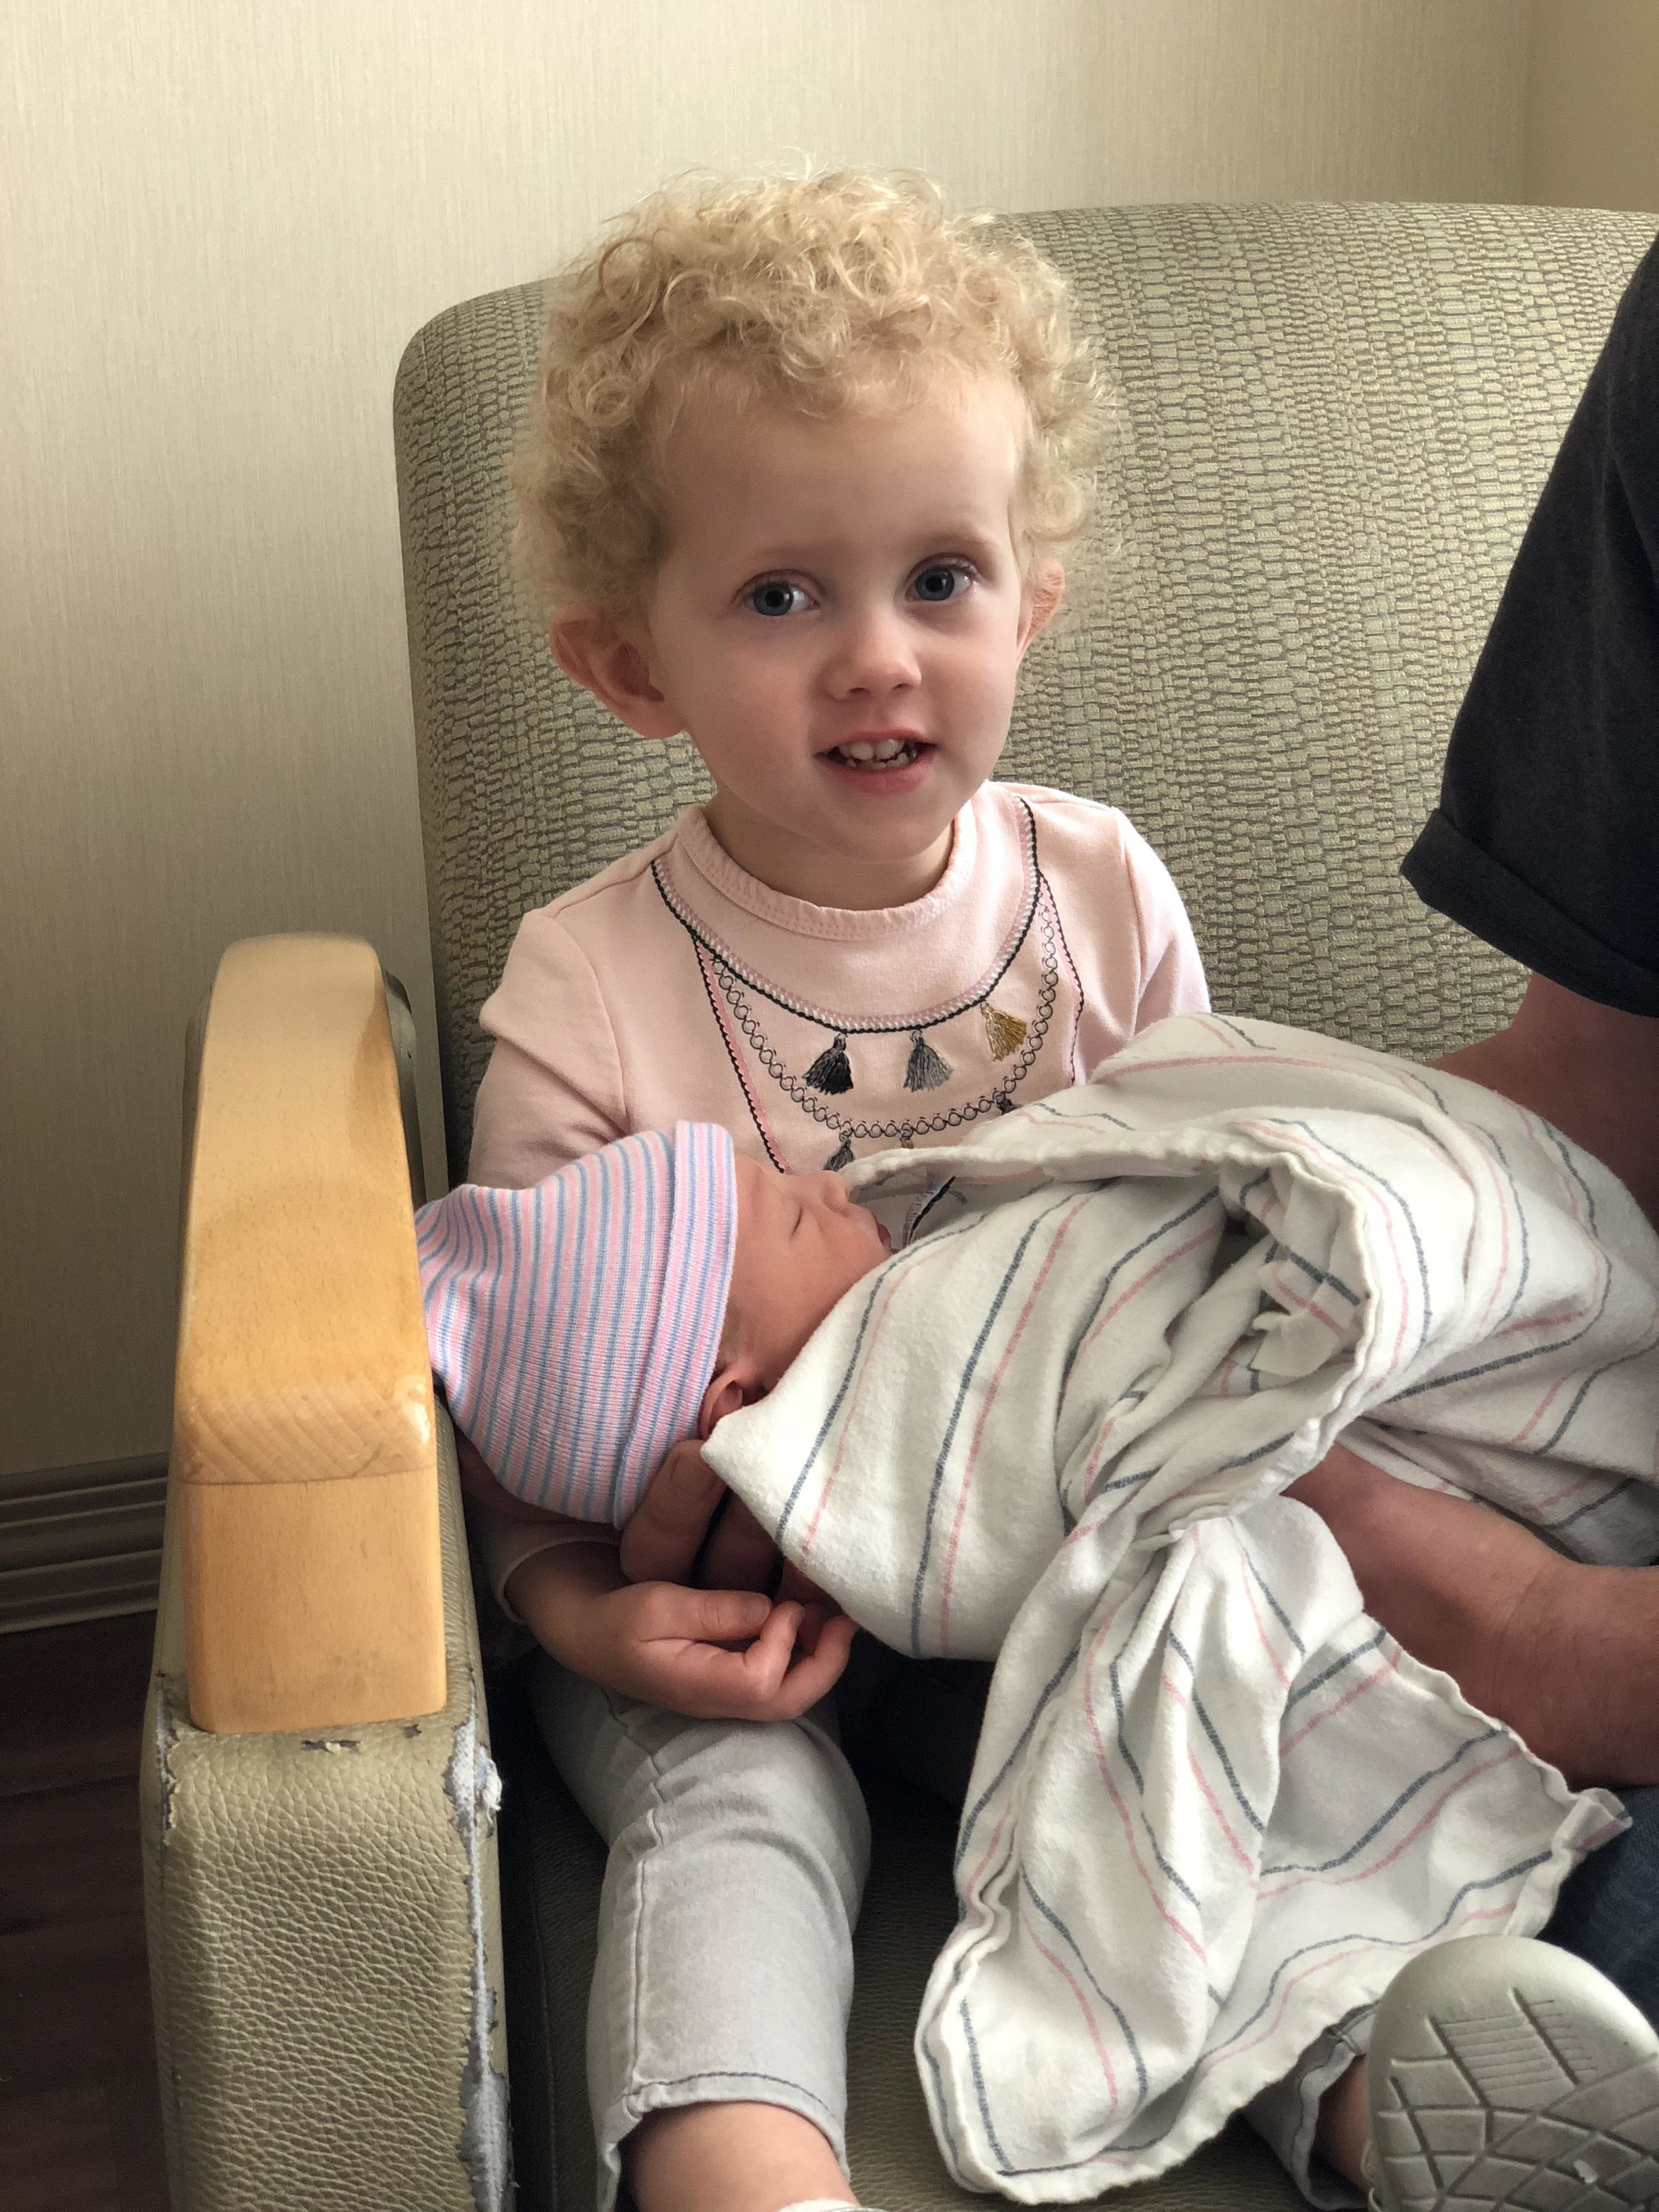 Sienna meeting Carson for the first time.